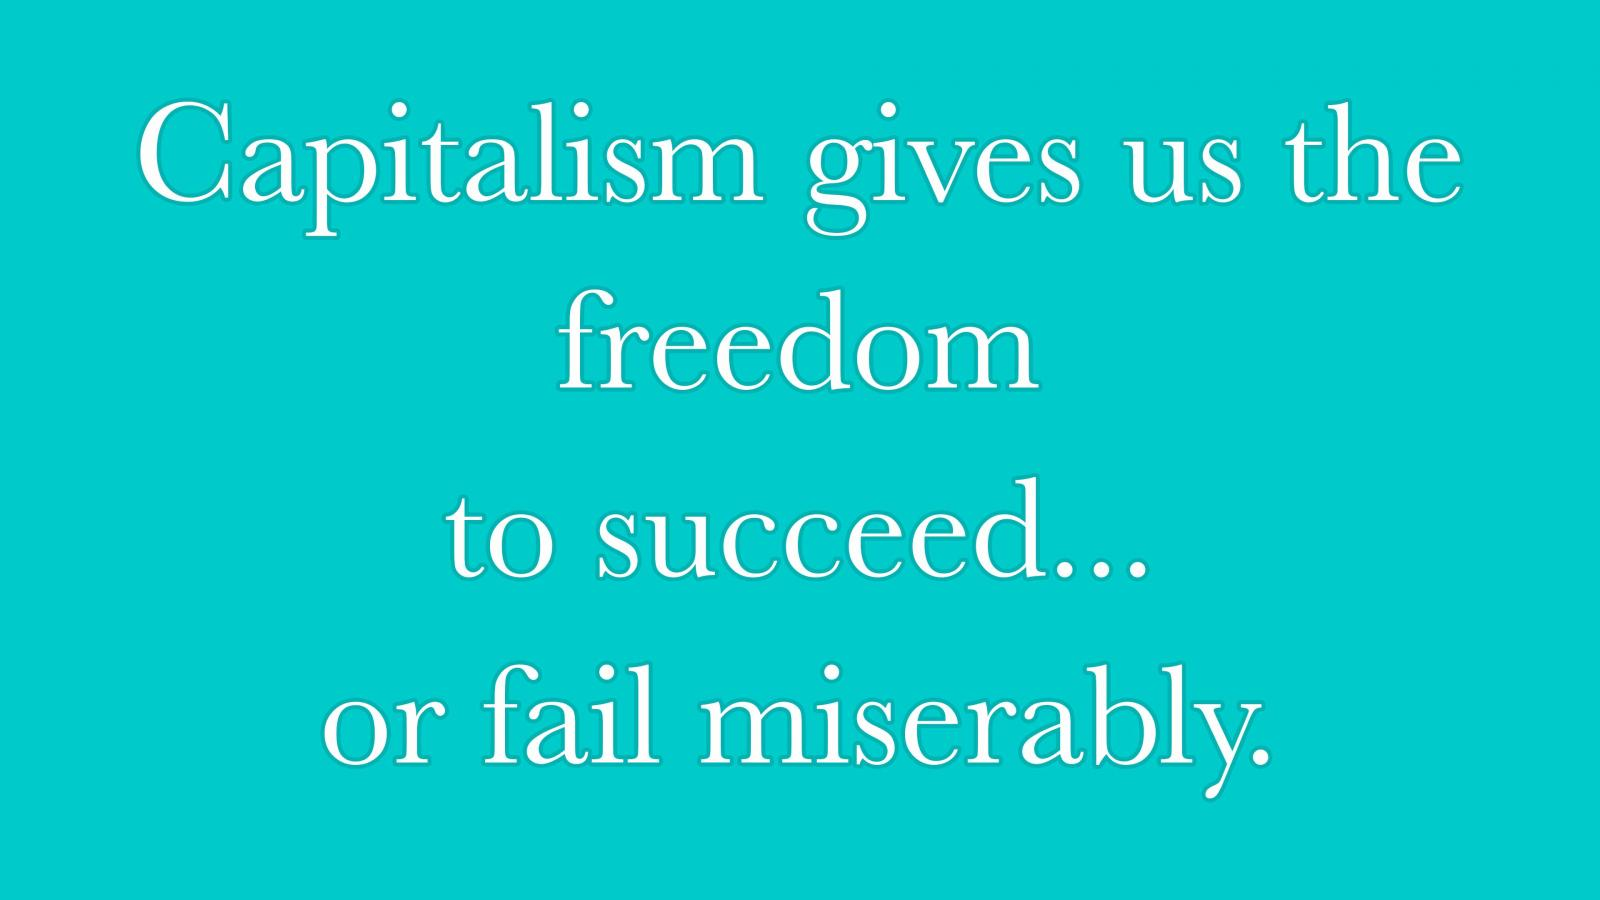 Capitalism gives us the freedom to succeed... or fail miserably.